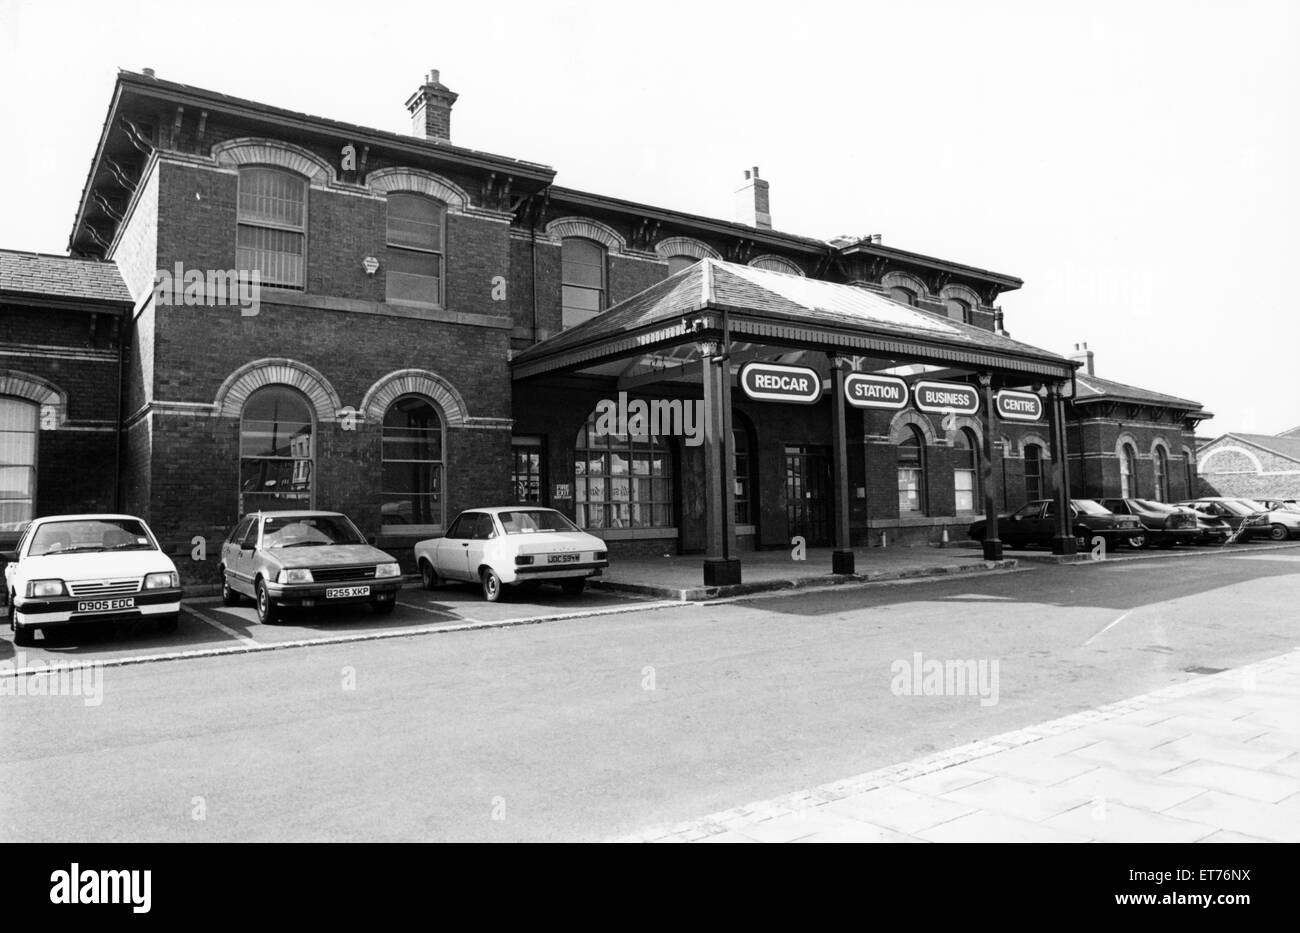 Redcar Station Business Centre, 21st August 1992. - Stock Image